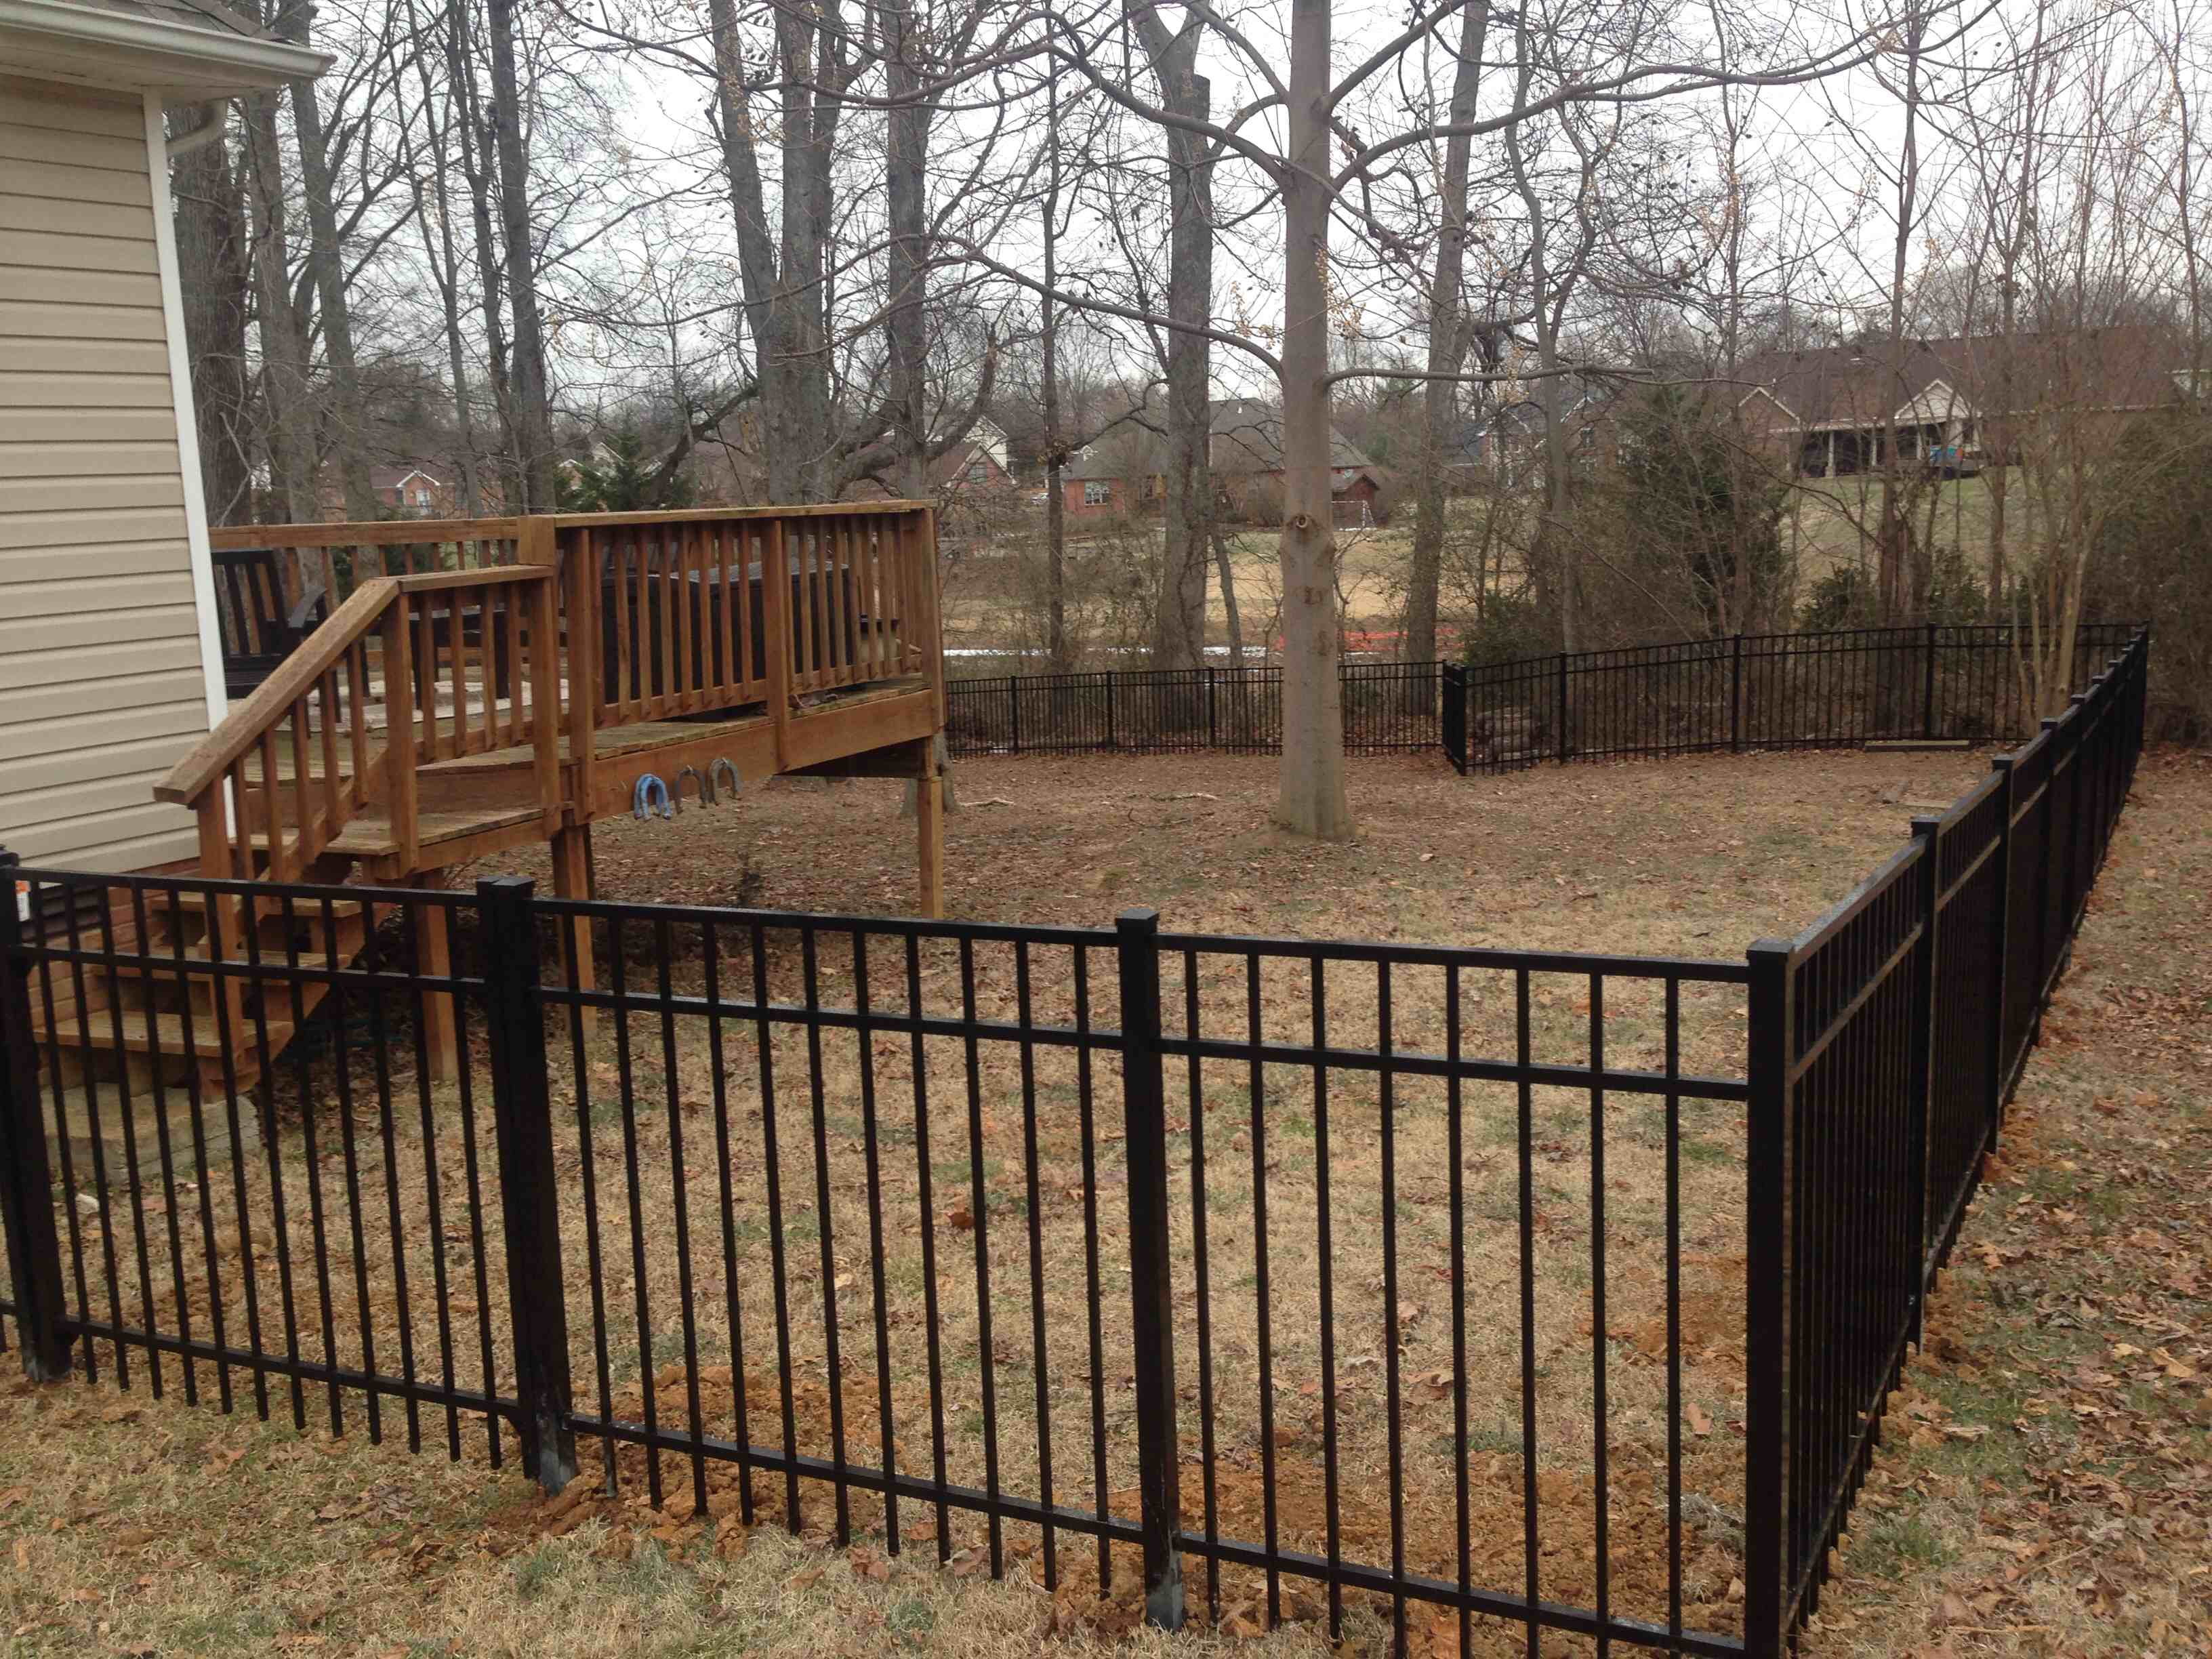 Yard Dog Fence Clarksville Tn 37043 Angies List